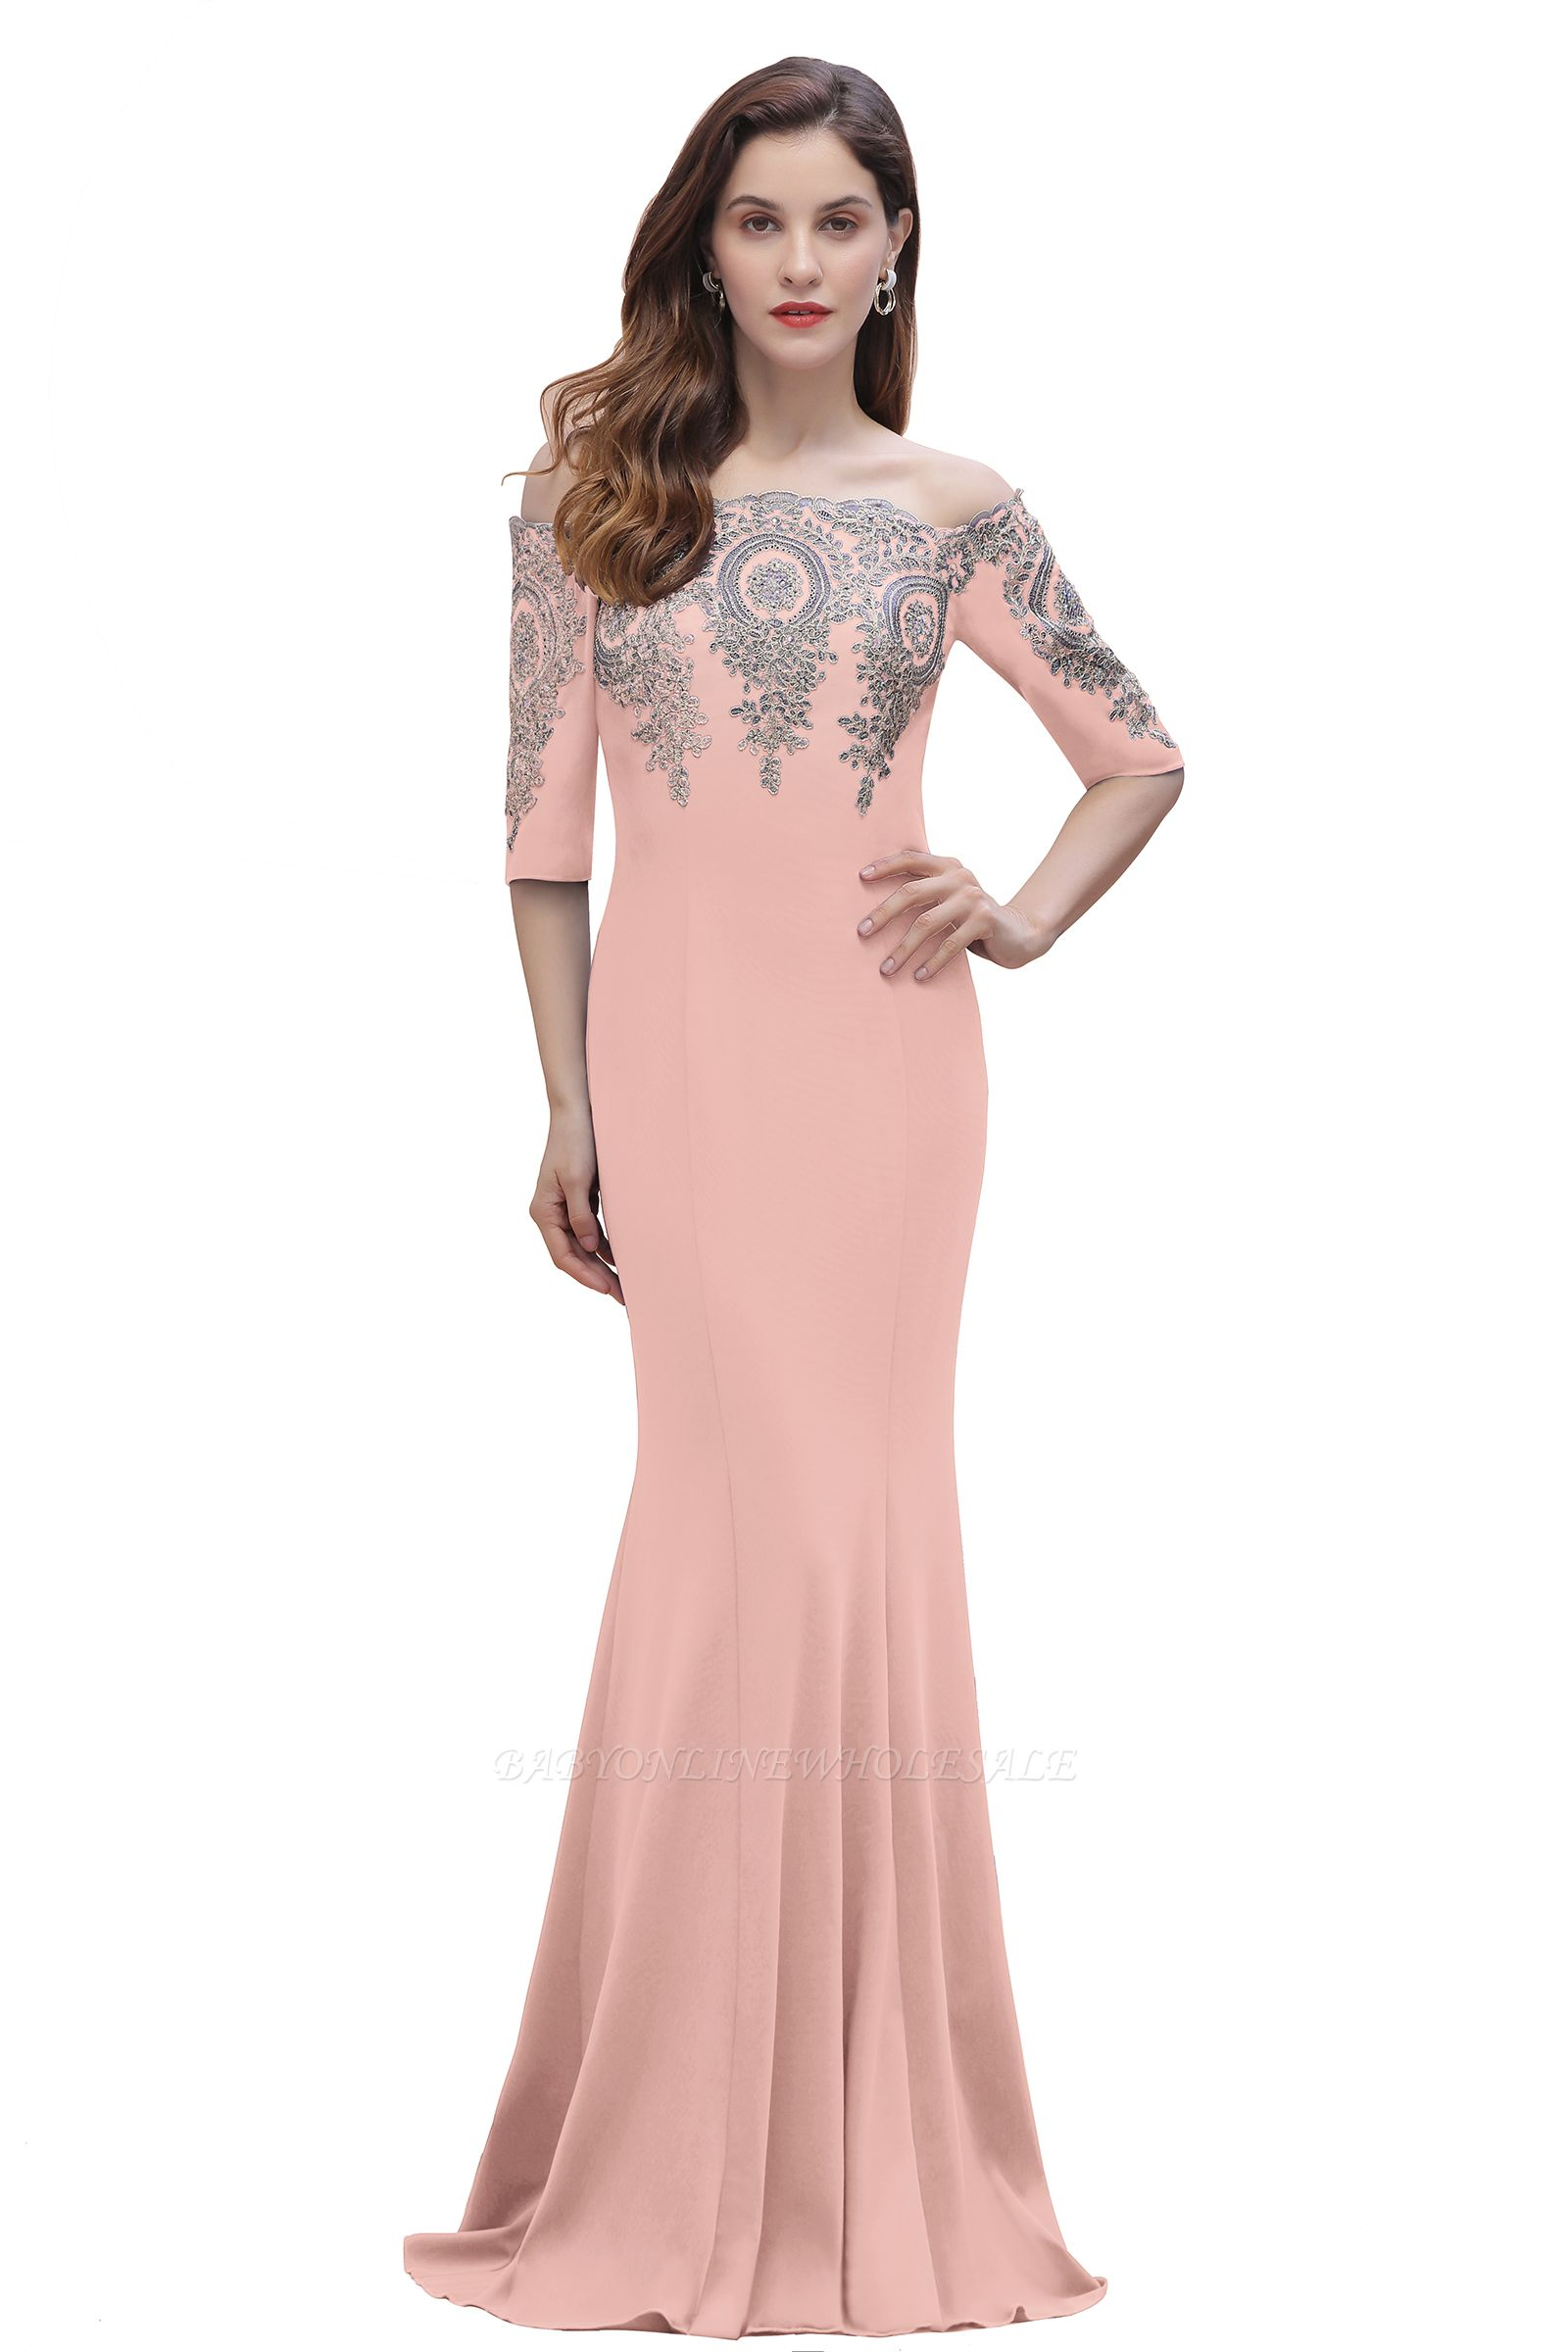 Off the Shoulder Half Sleeves Mermaid Evening Dress Gold Appliques Prom Dress